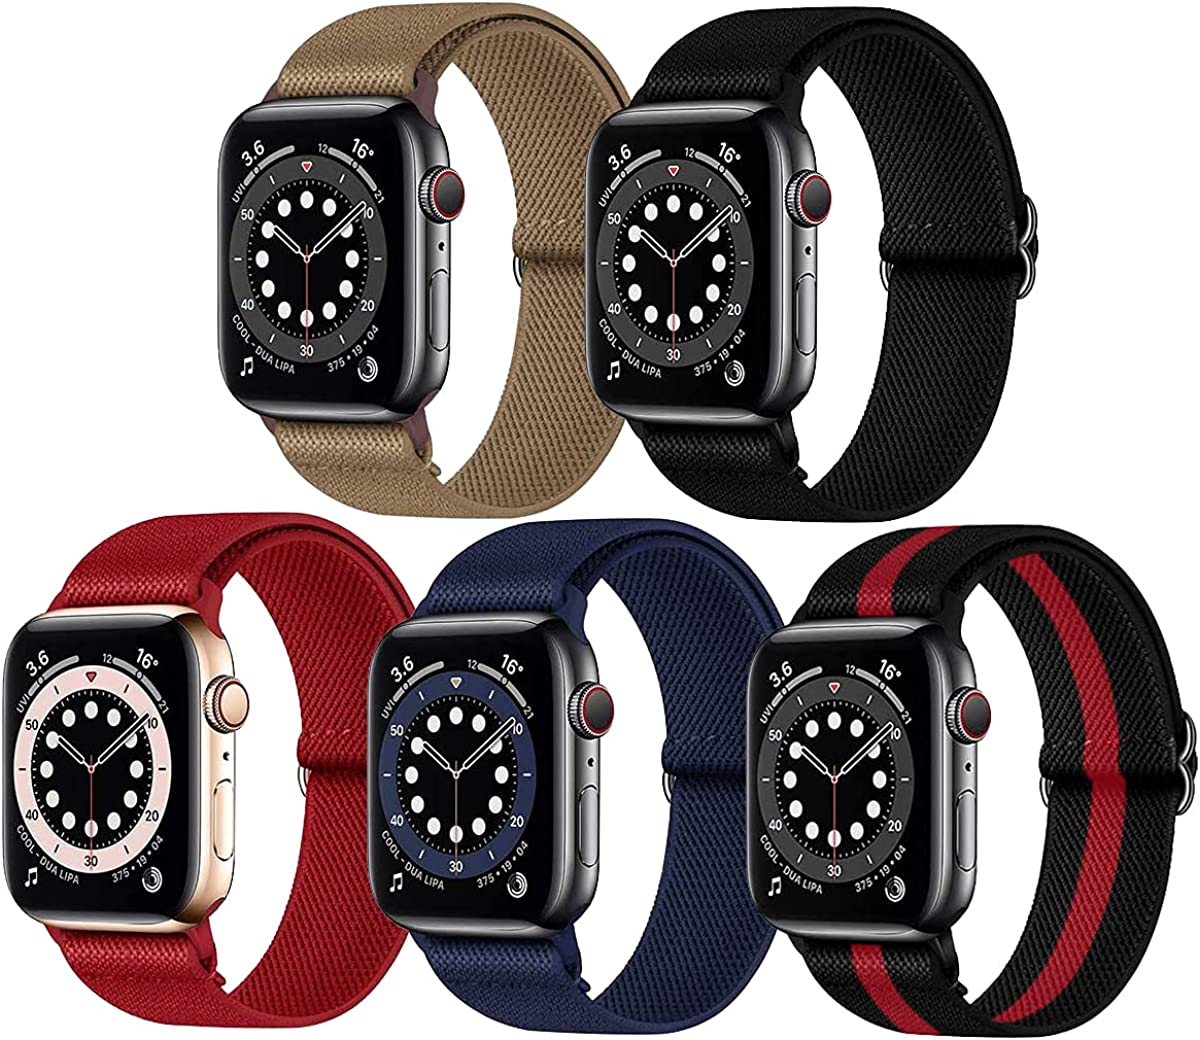 Stretchy Nylon Solo Loop Bands Compatible with Apple Watch 38mm 40mm 42mm 44mm, [5Pack]-Women Men Adjustable Stretch Braided Sport Elastics Strap Compatible with iWatch Series 6/5/4/3/2/1 SE